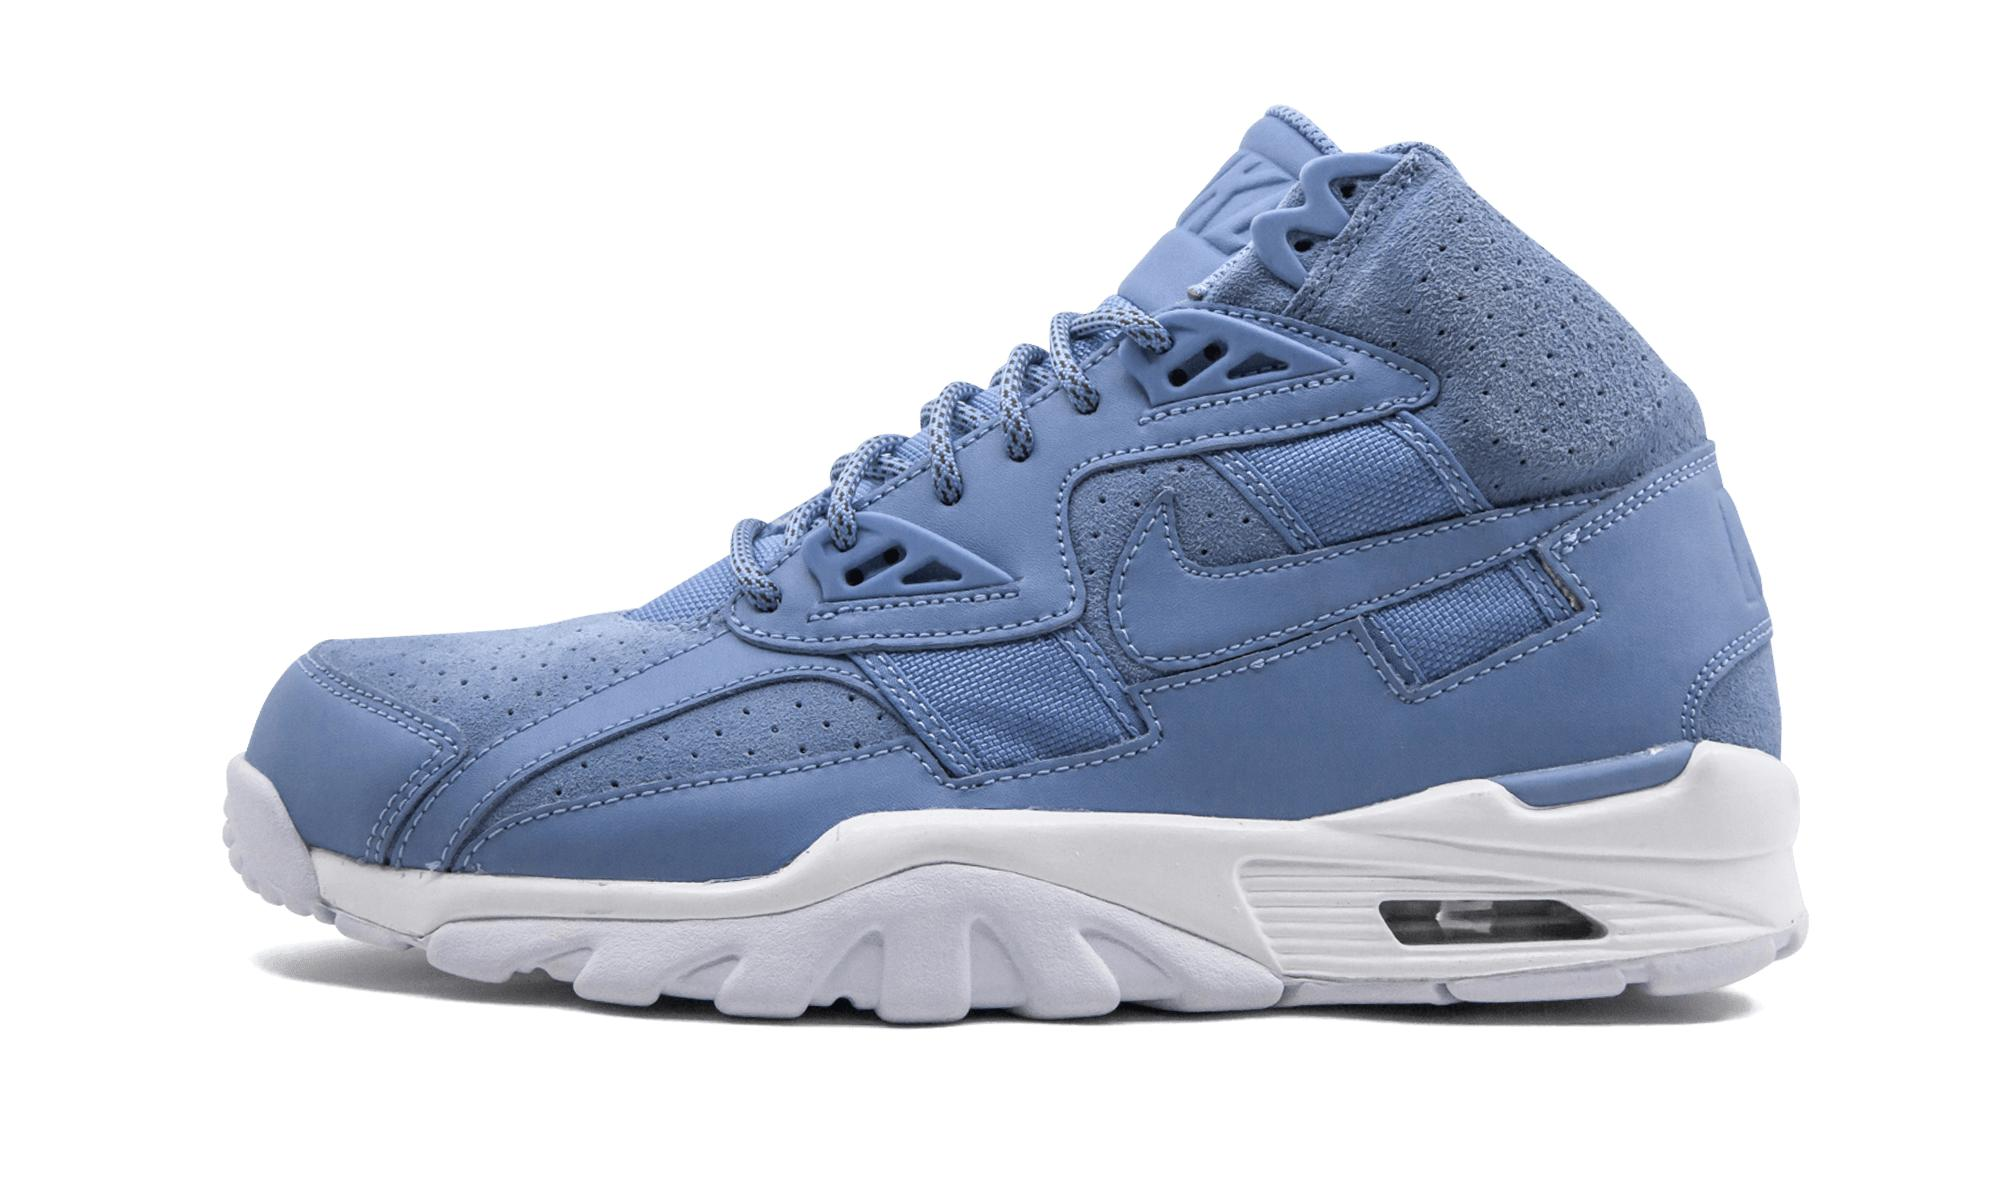 premium selection 81b4a 479d5 Nike Air Trainer Sc High - Size 8 in Blue for Men - Lyst